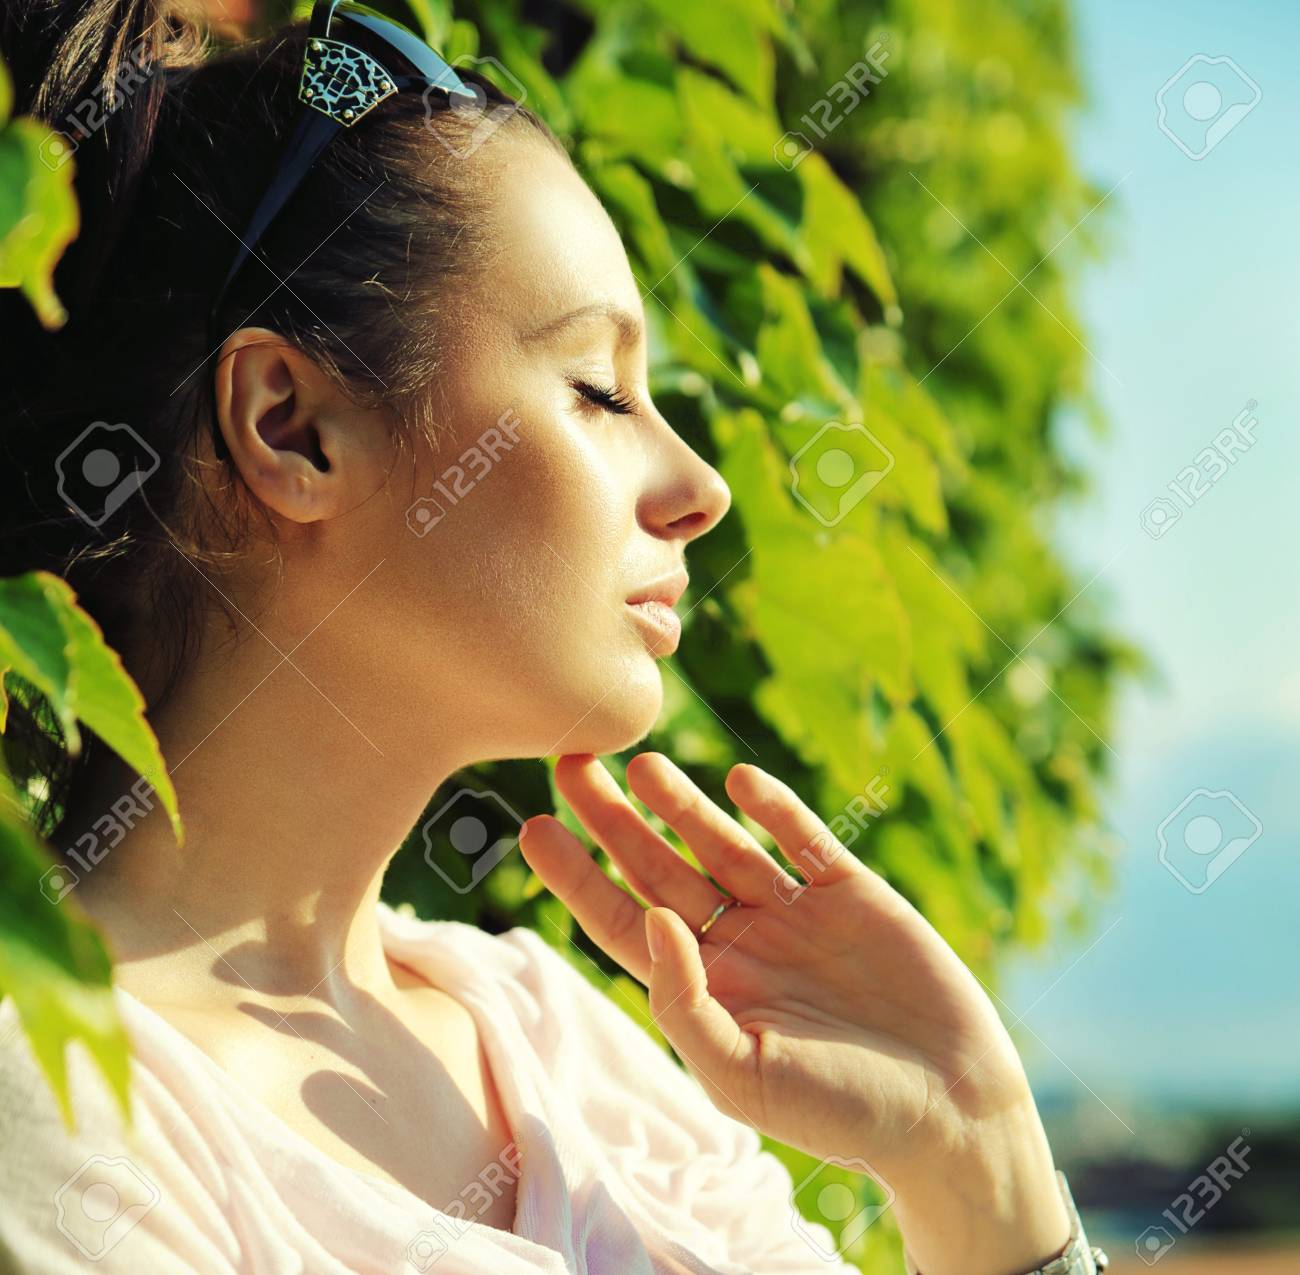 Attractive young ladyleaning on plant fence Stock Photo - 21553340